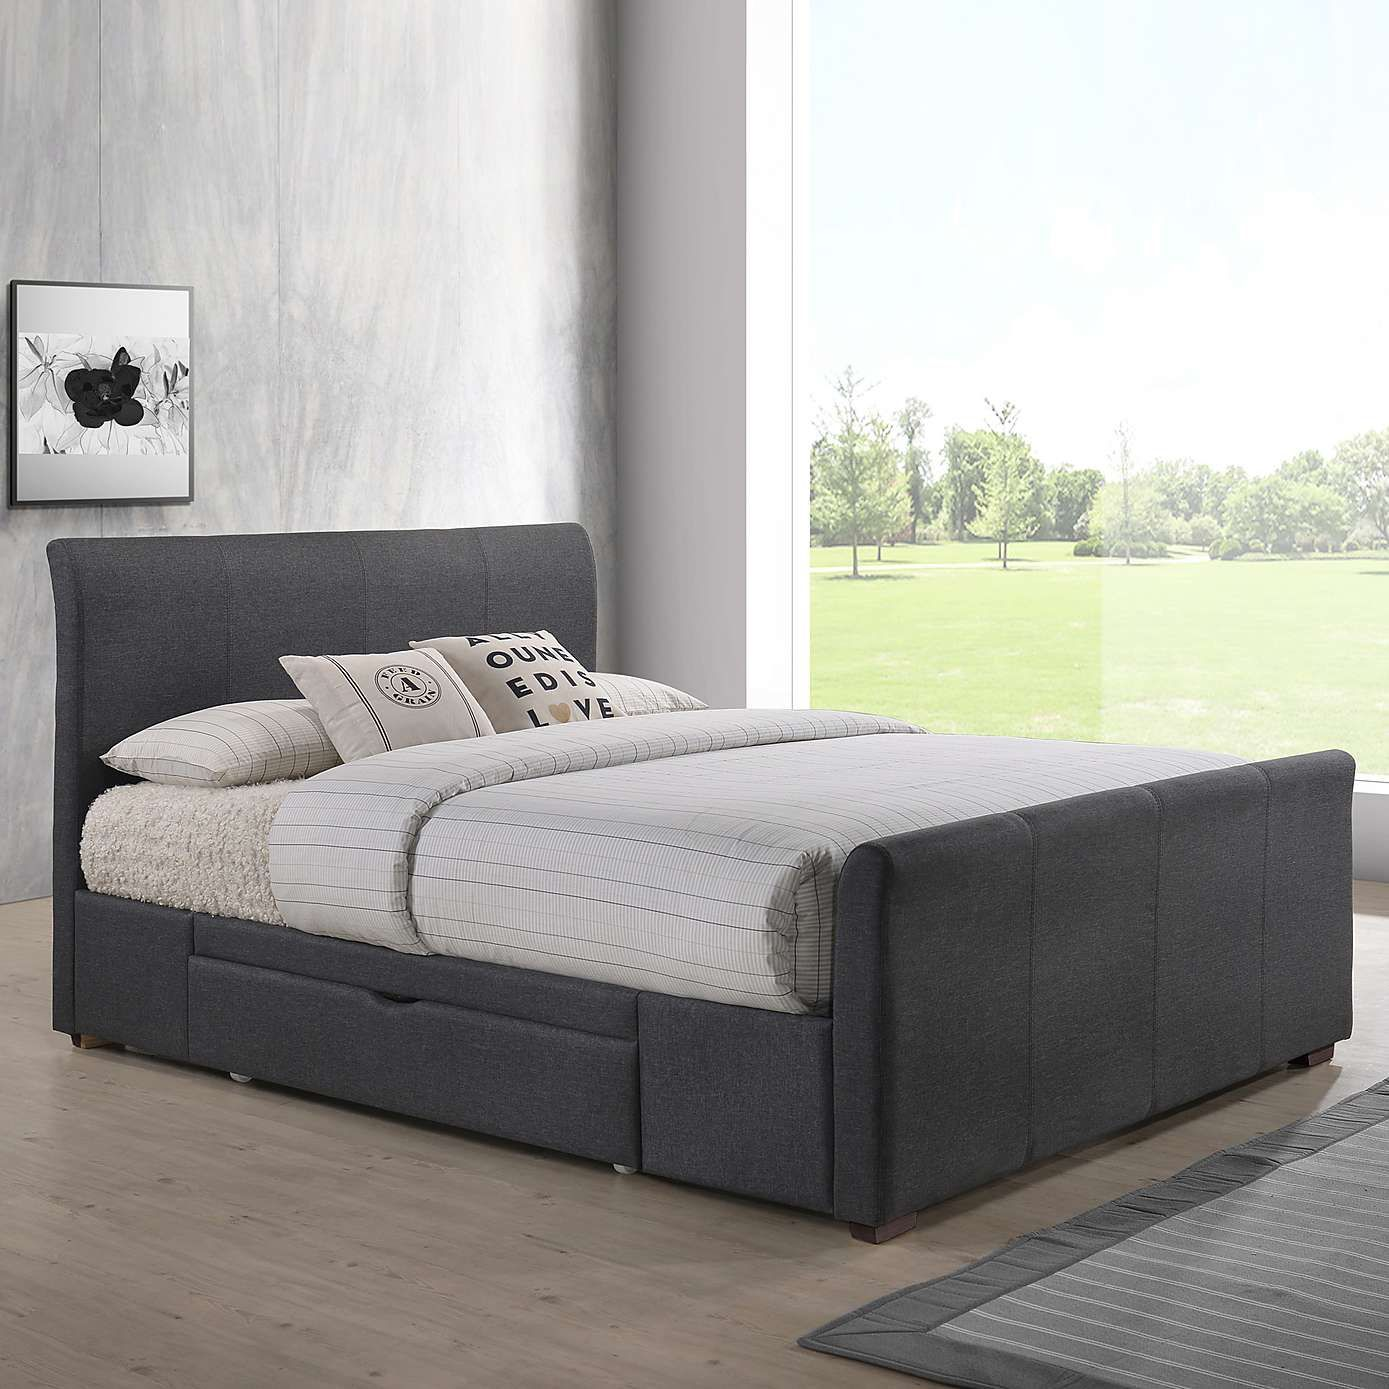 Happy New Year From The Better Bed Company See The Latest Bed Frames All For Free Delivery And With Sale Prices This January Bedfra In 2020 Bed Frame Fabric Bed Bed